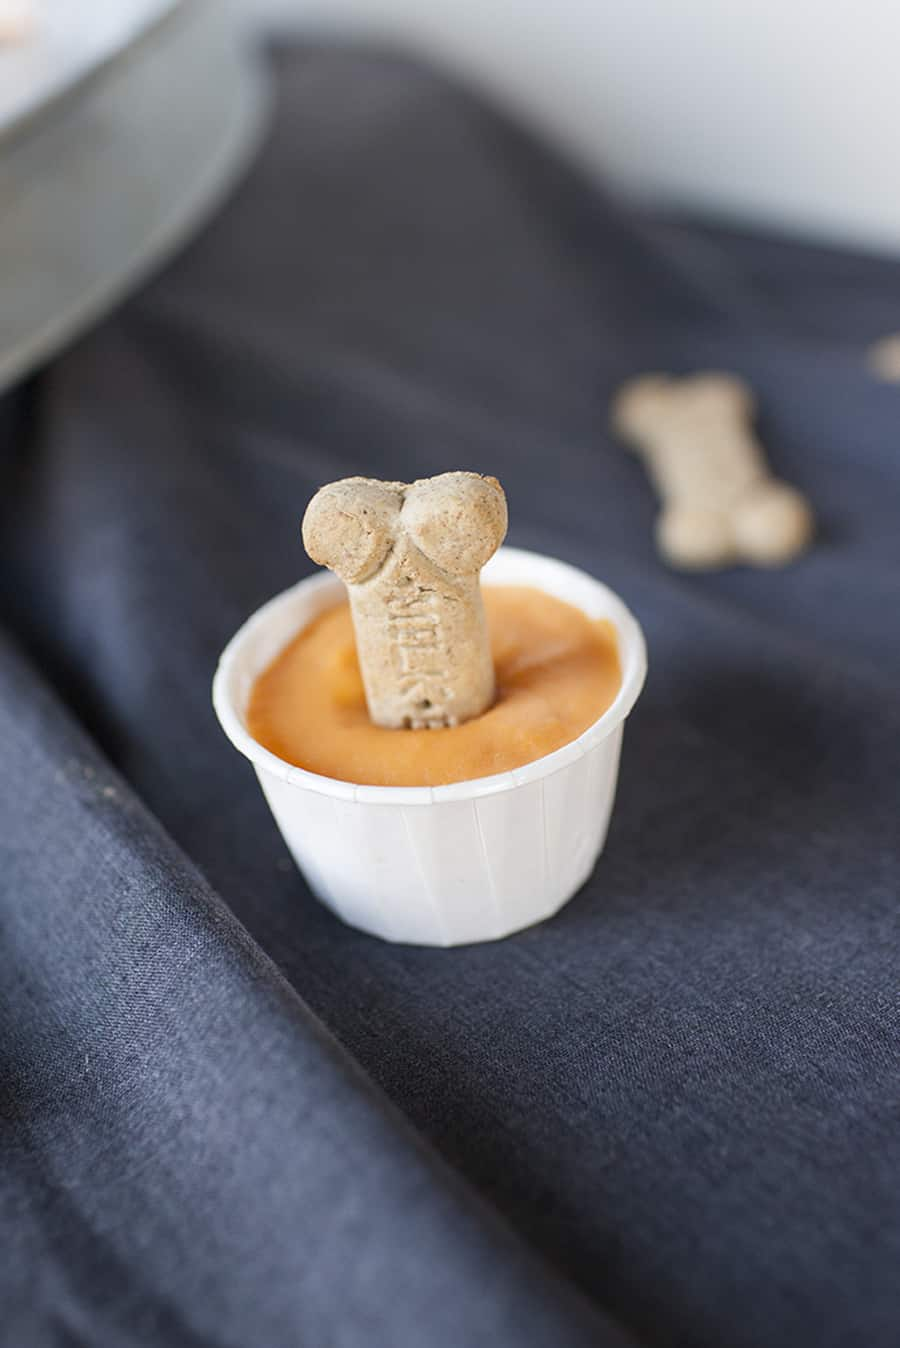 Make these homemade doggie treats this summer for your pet! These sweet potato and banana pupsicles are the perfect treat to beat the summer heat.